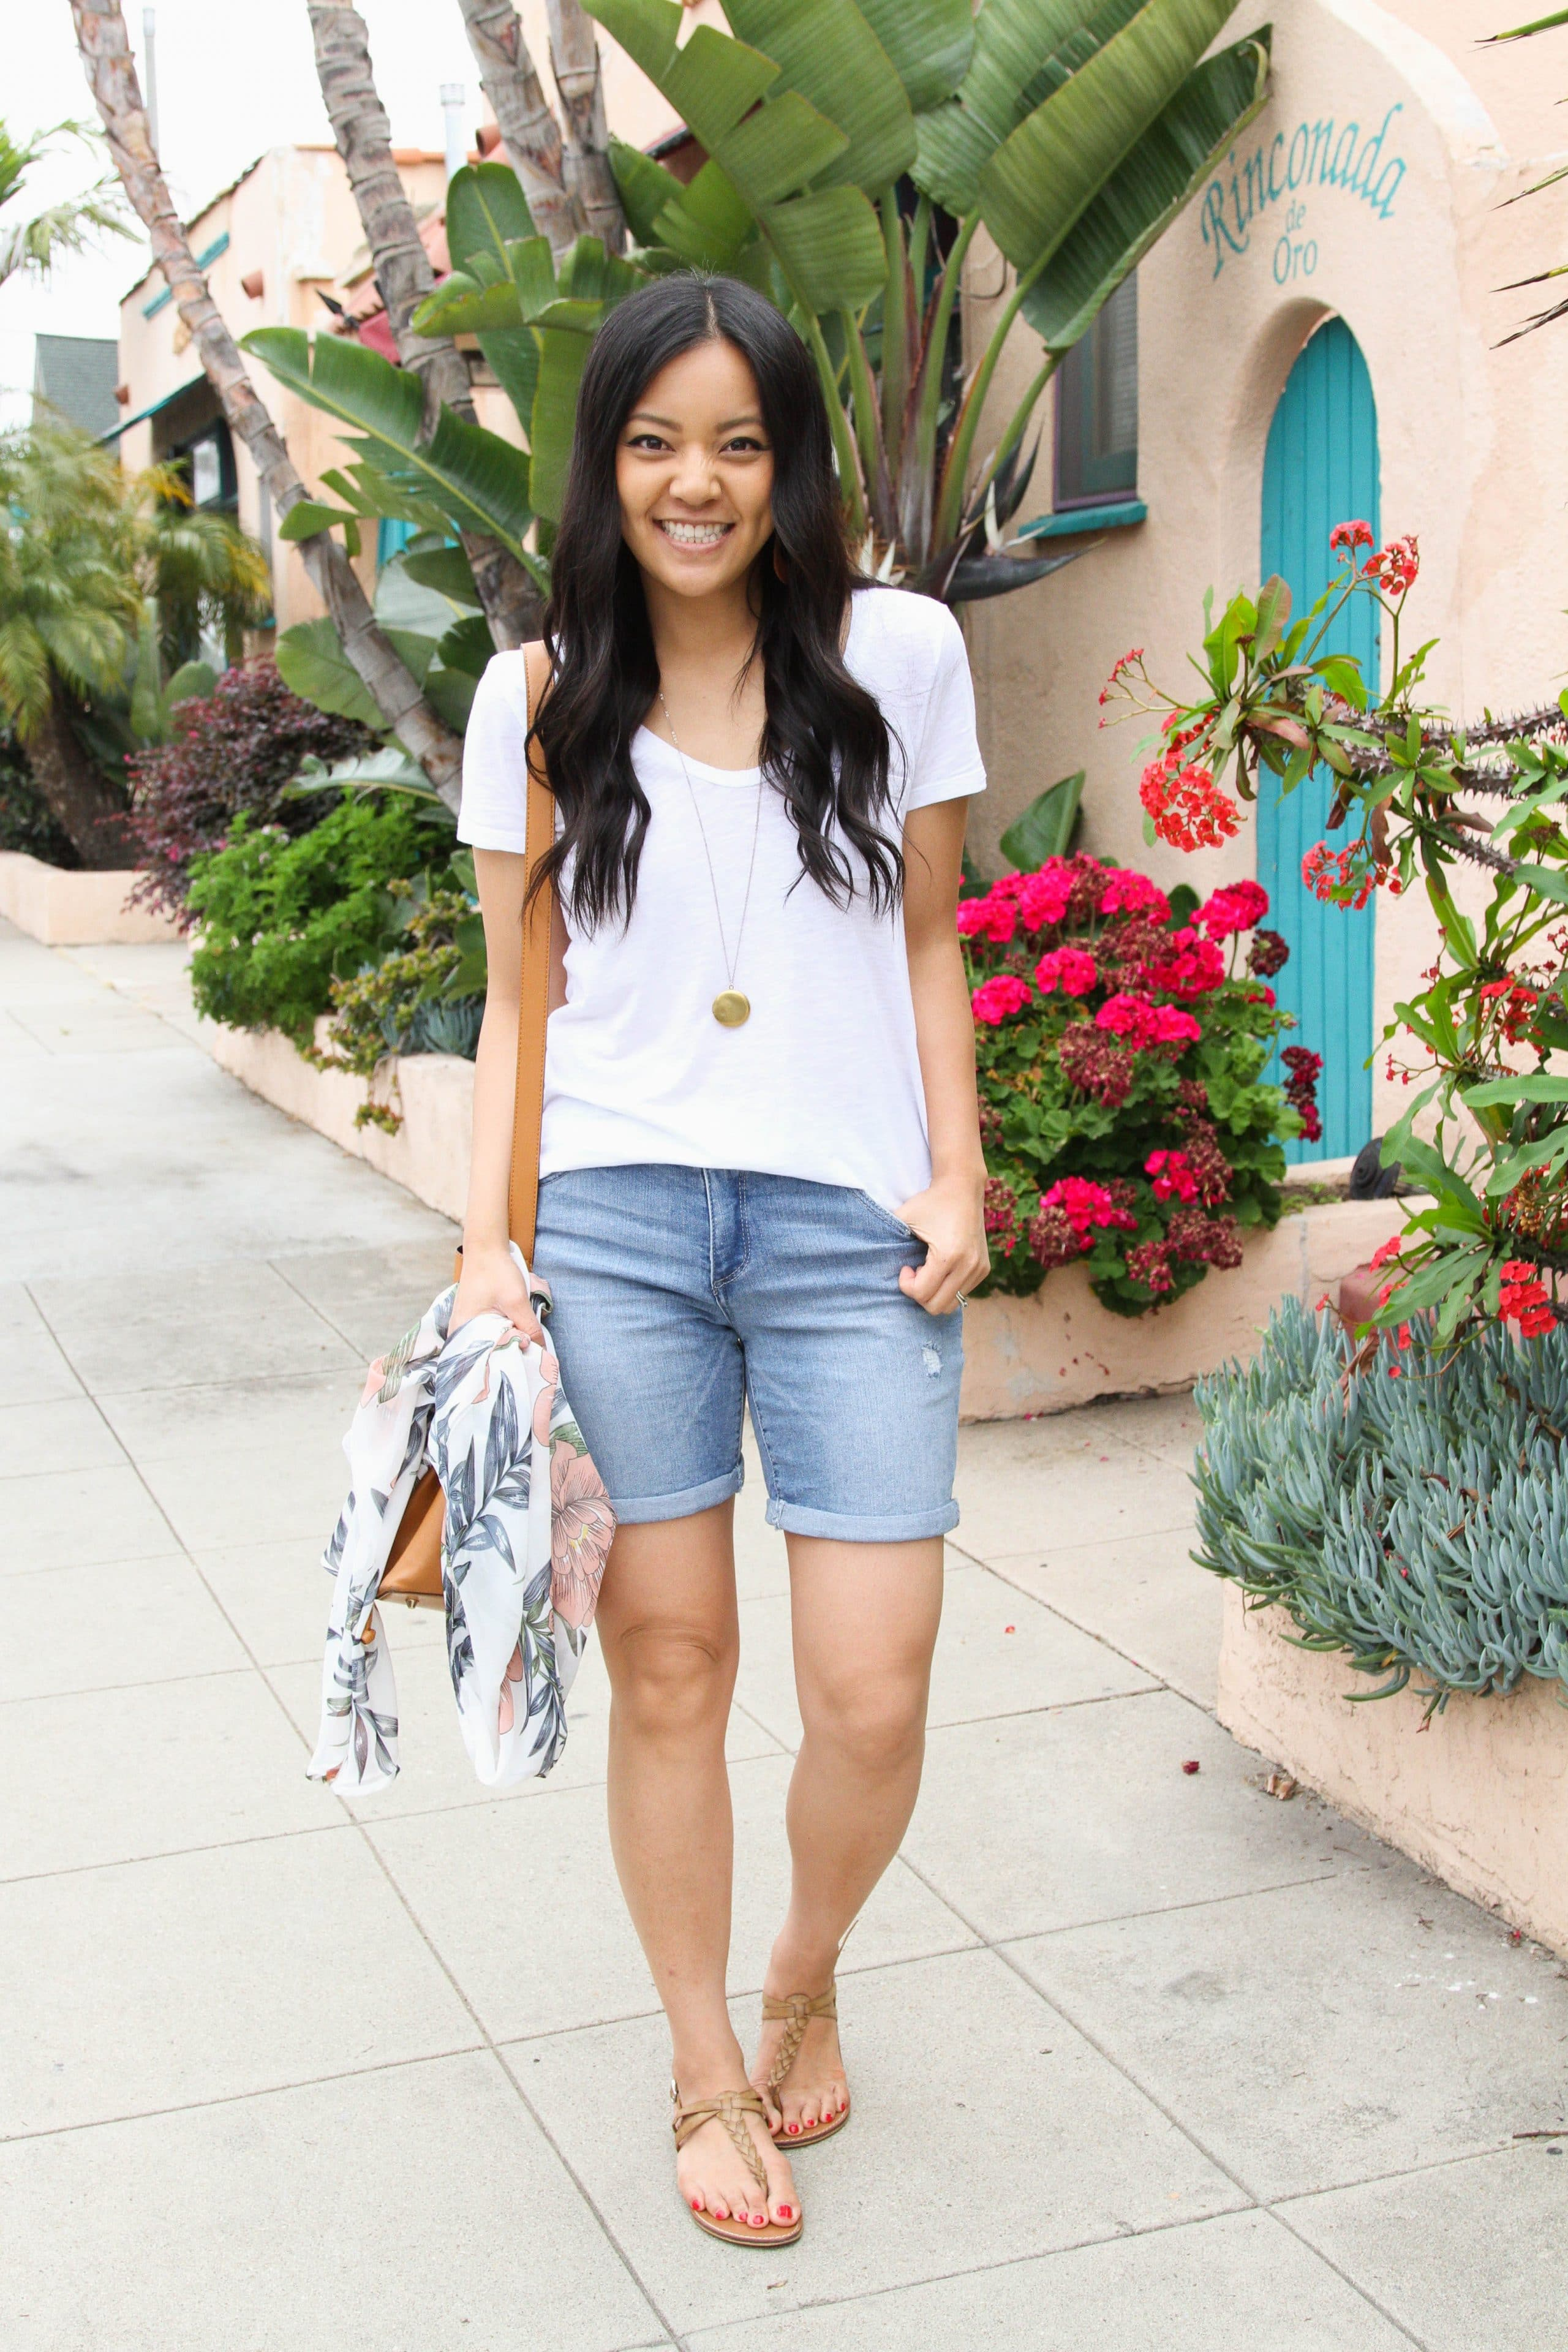 Sandals + white tee + bermuda shorts + bucket bag